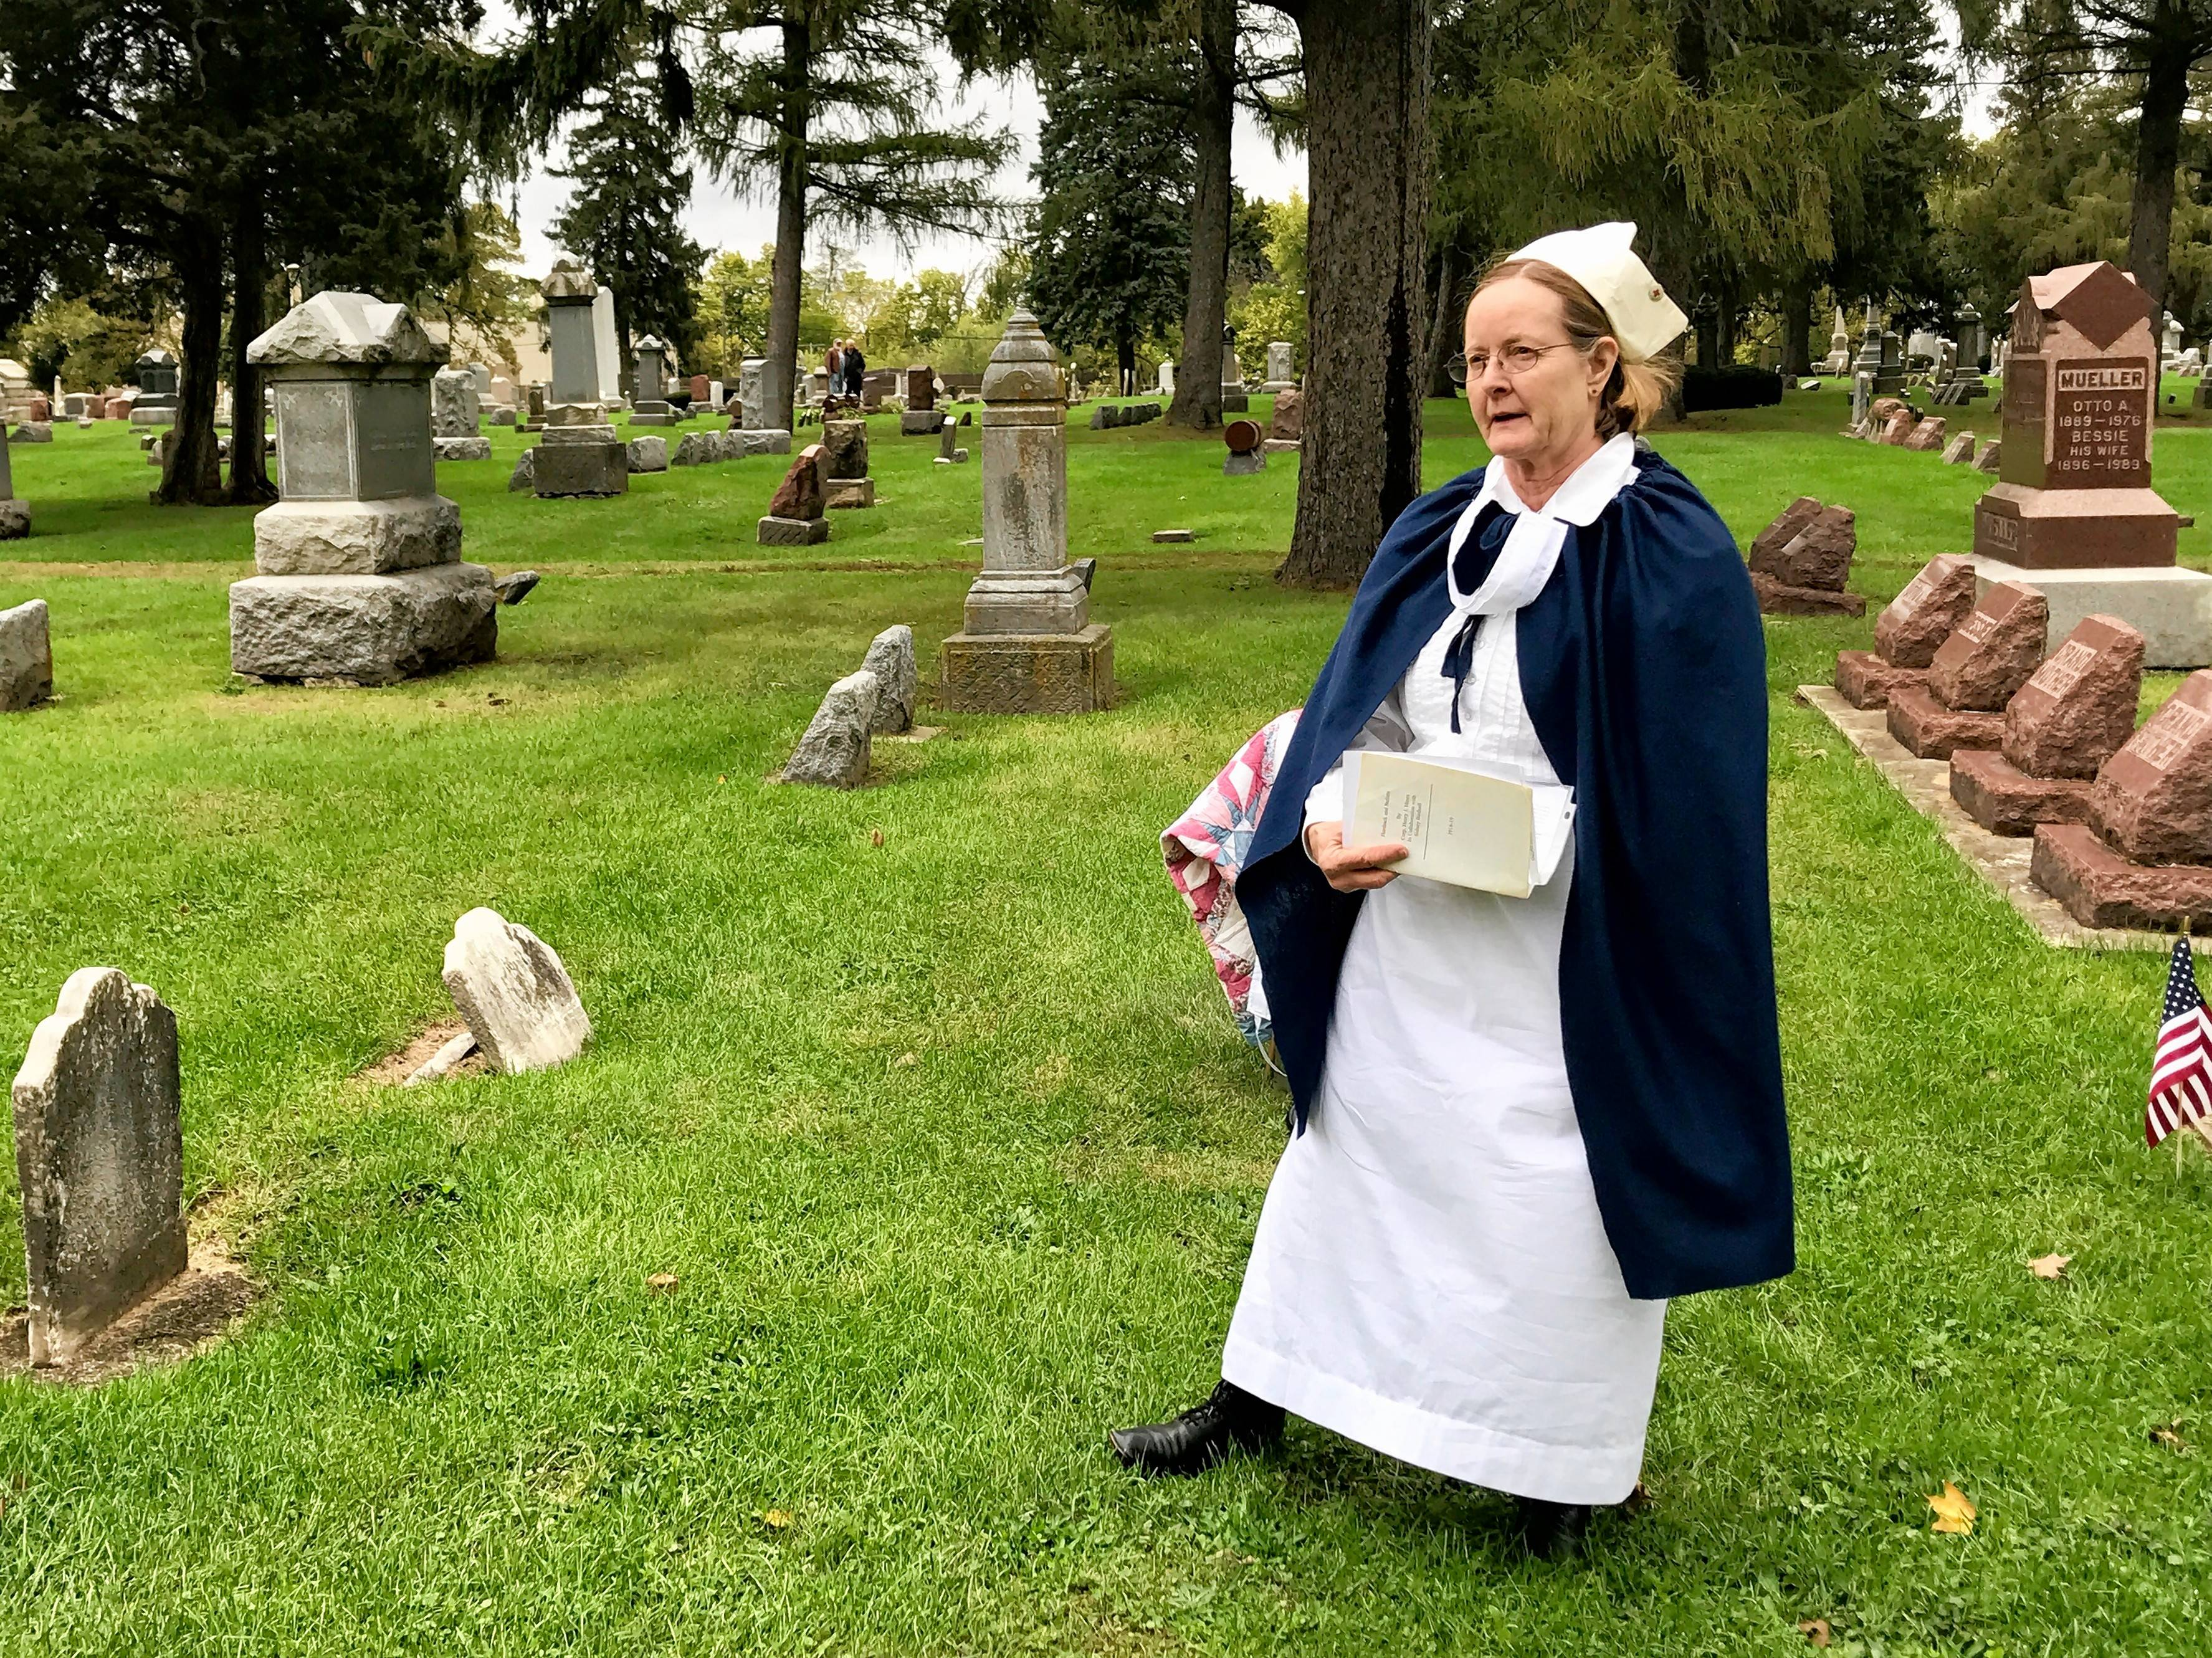 Kristie Benedik of Carpentersville portrays Red Cross nurse Caroline Steinwart during the Dundee Township Historical Society's cemetery walk Sunday in West Dundee.